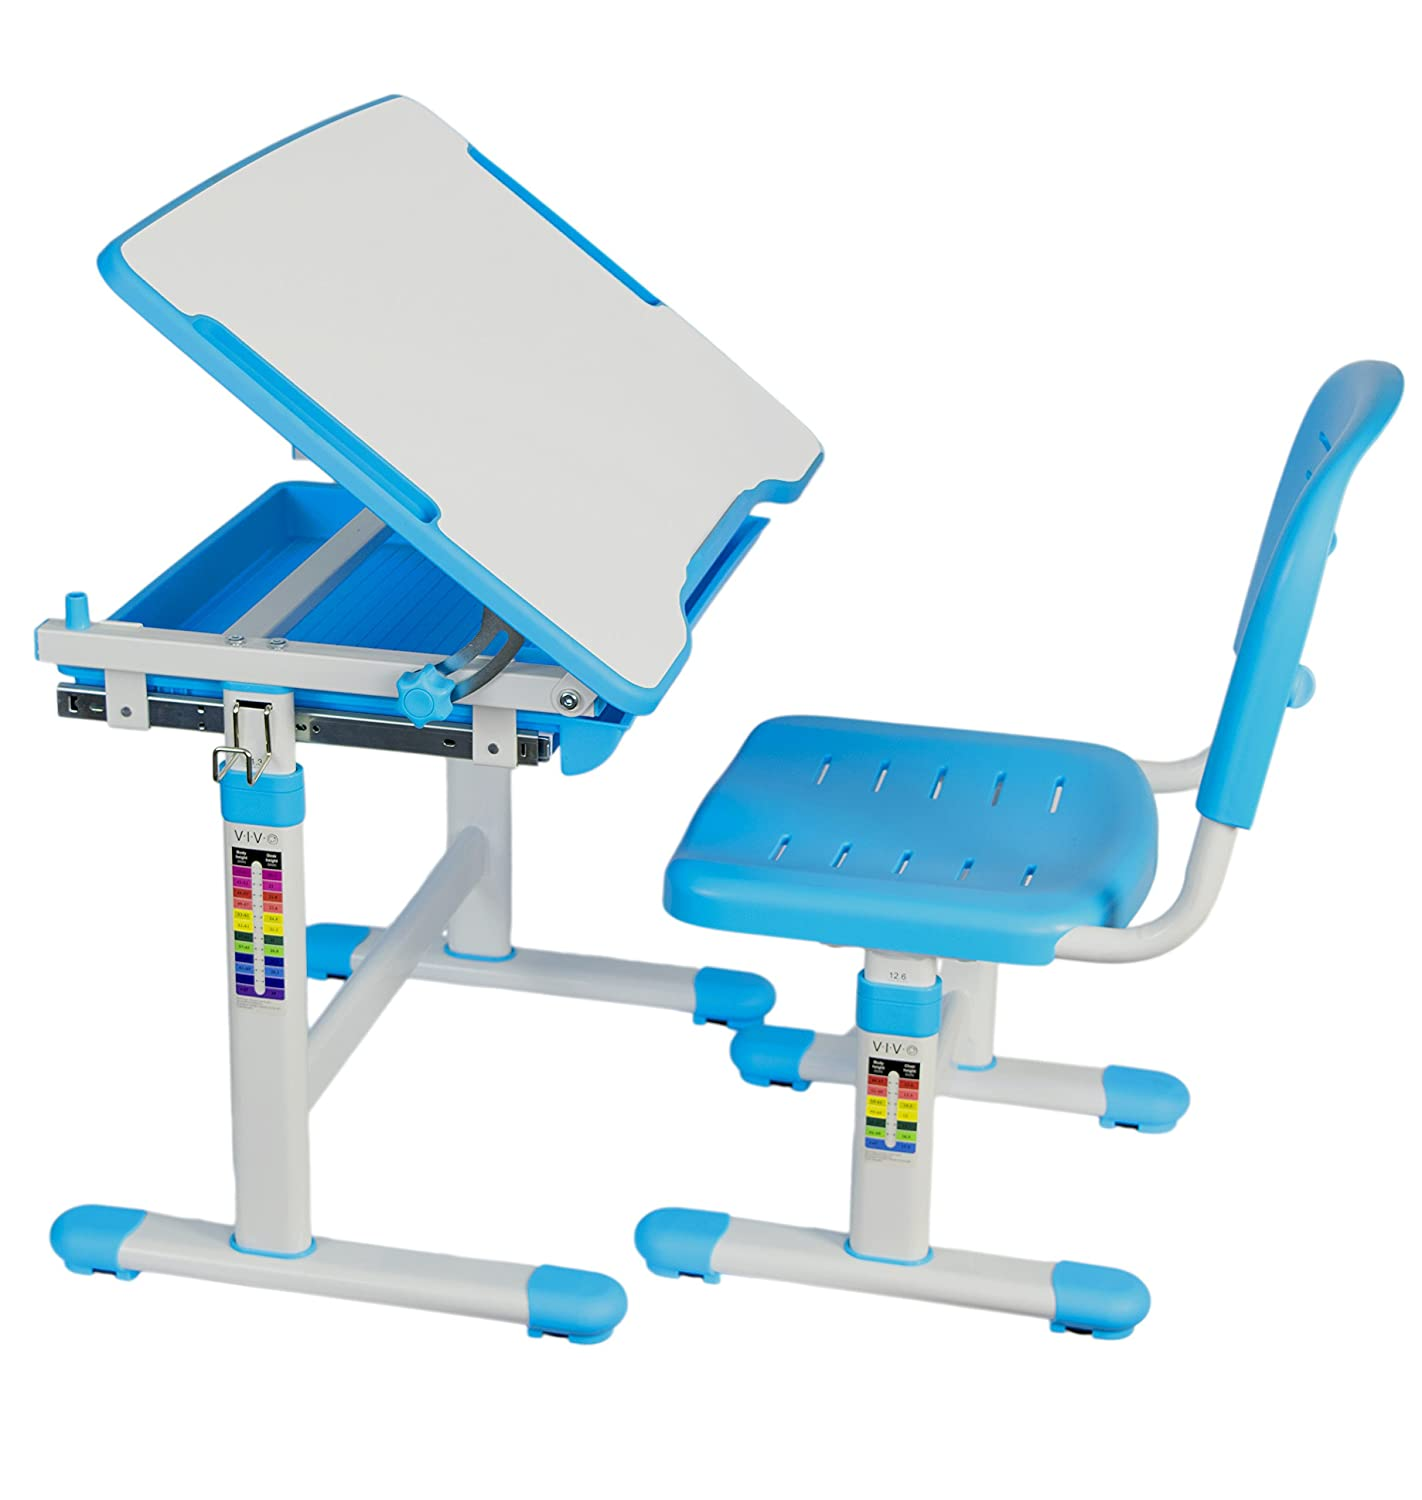 Amazon.com: VIVO Height Adjustable Childrens Desk U0026 Chair Set | Kids  Interactive Work Station Blue (DESK V201B): Kitchen U0026 Dining